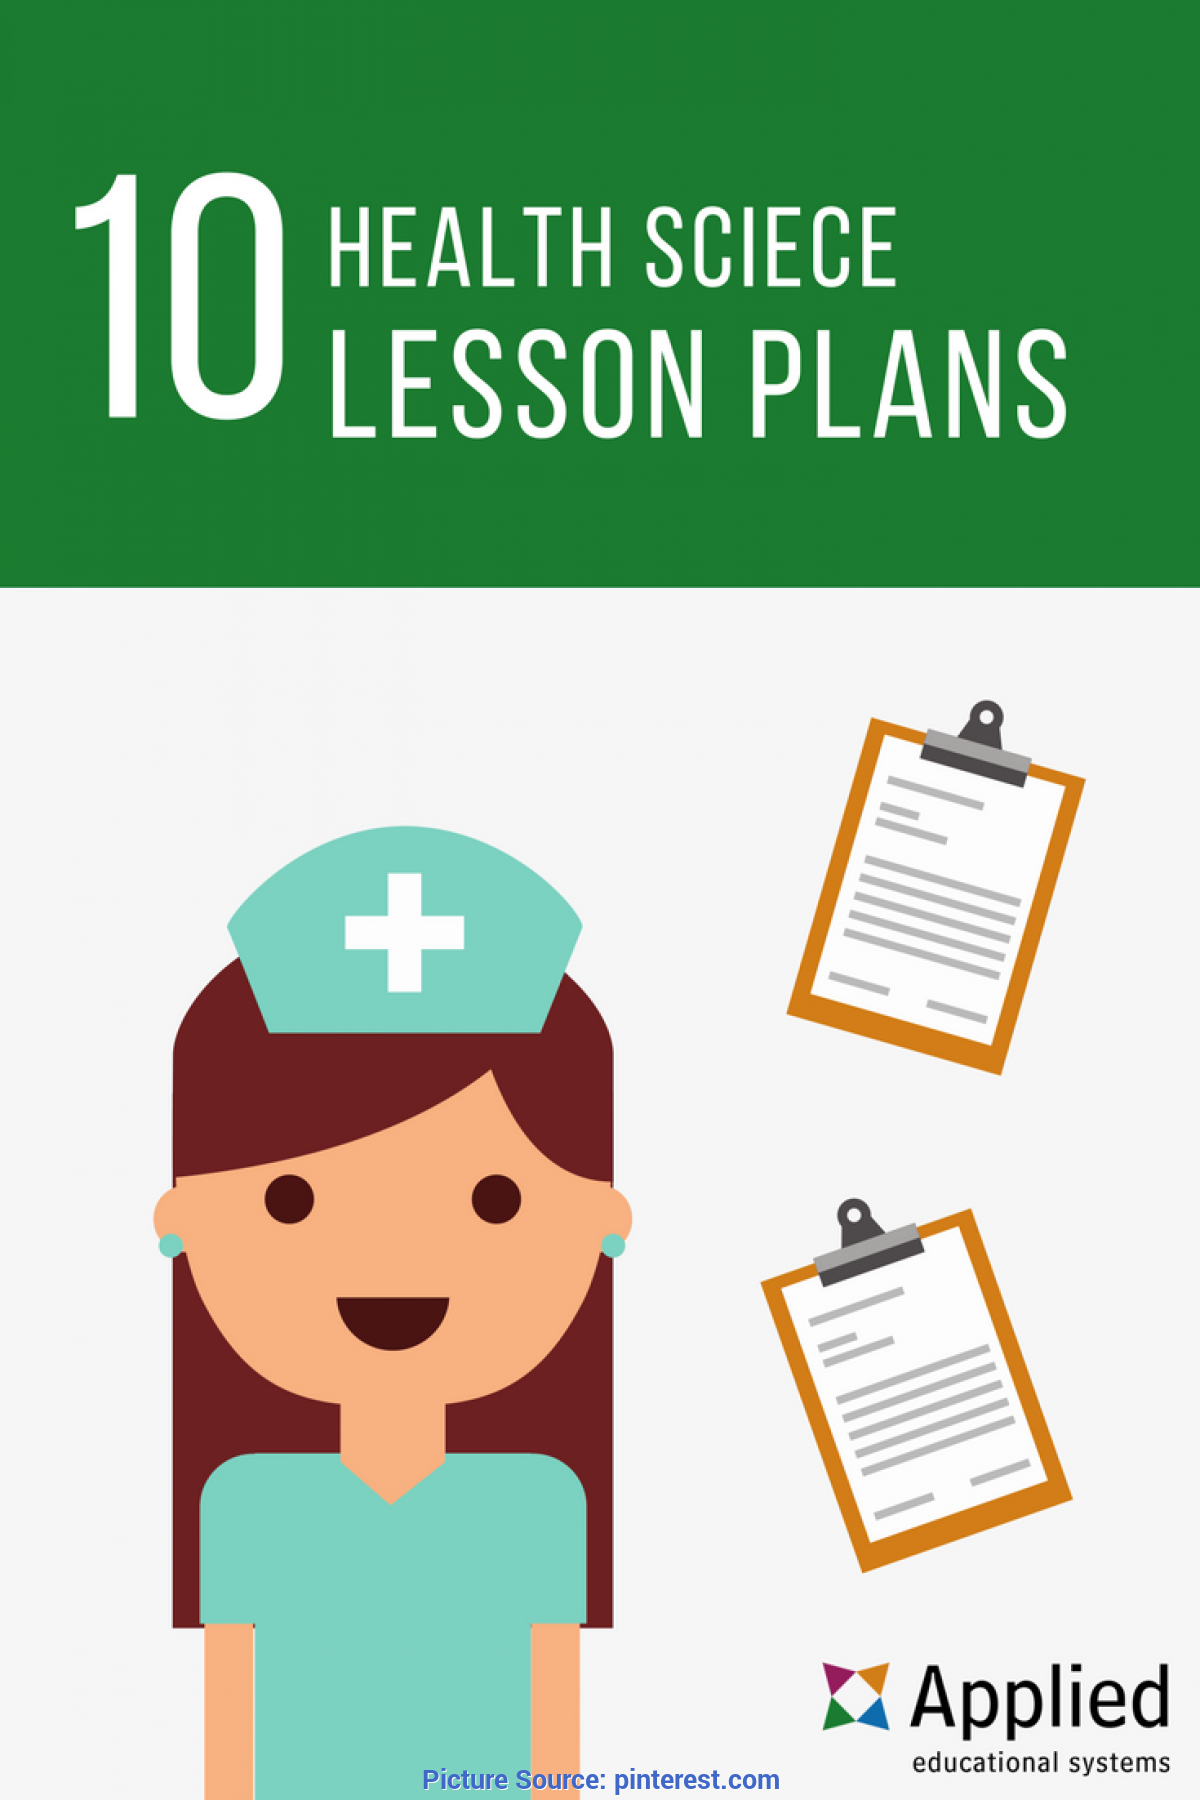 Good Health Science Lesson Plans Top 10 Health Science Lesson Plans For Cte   Health Science Lesso